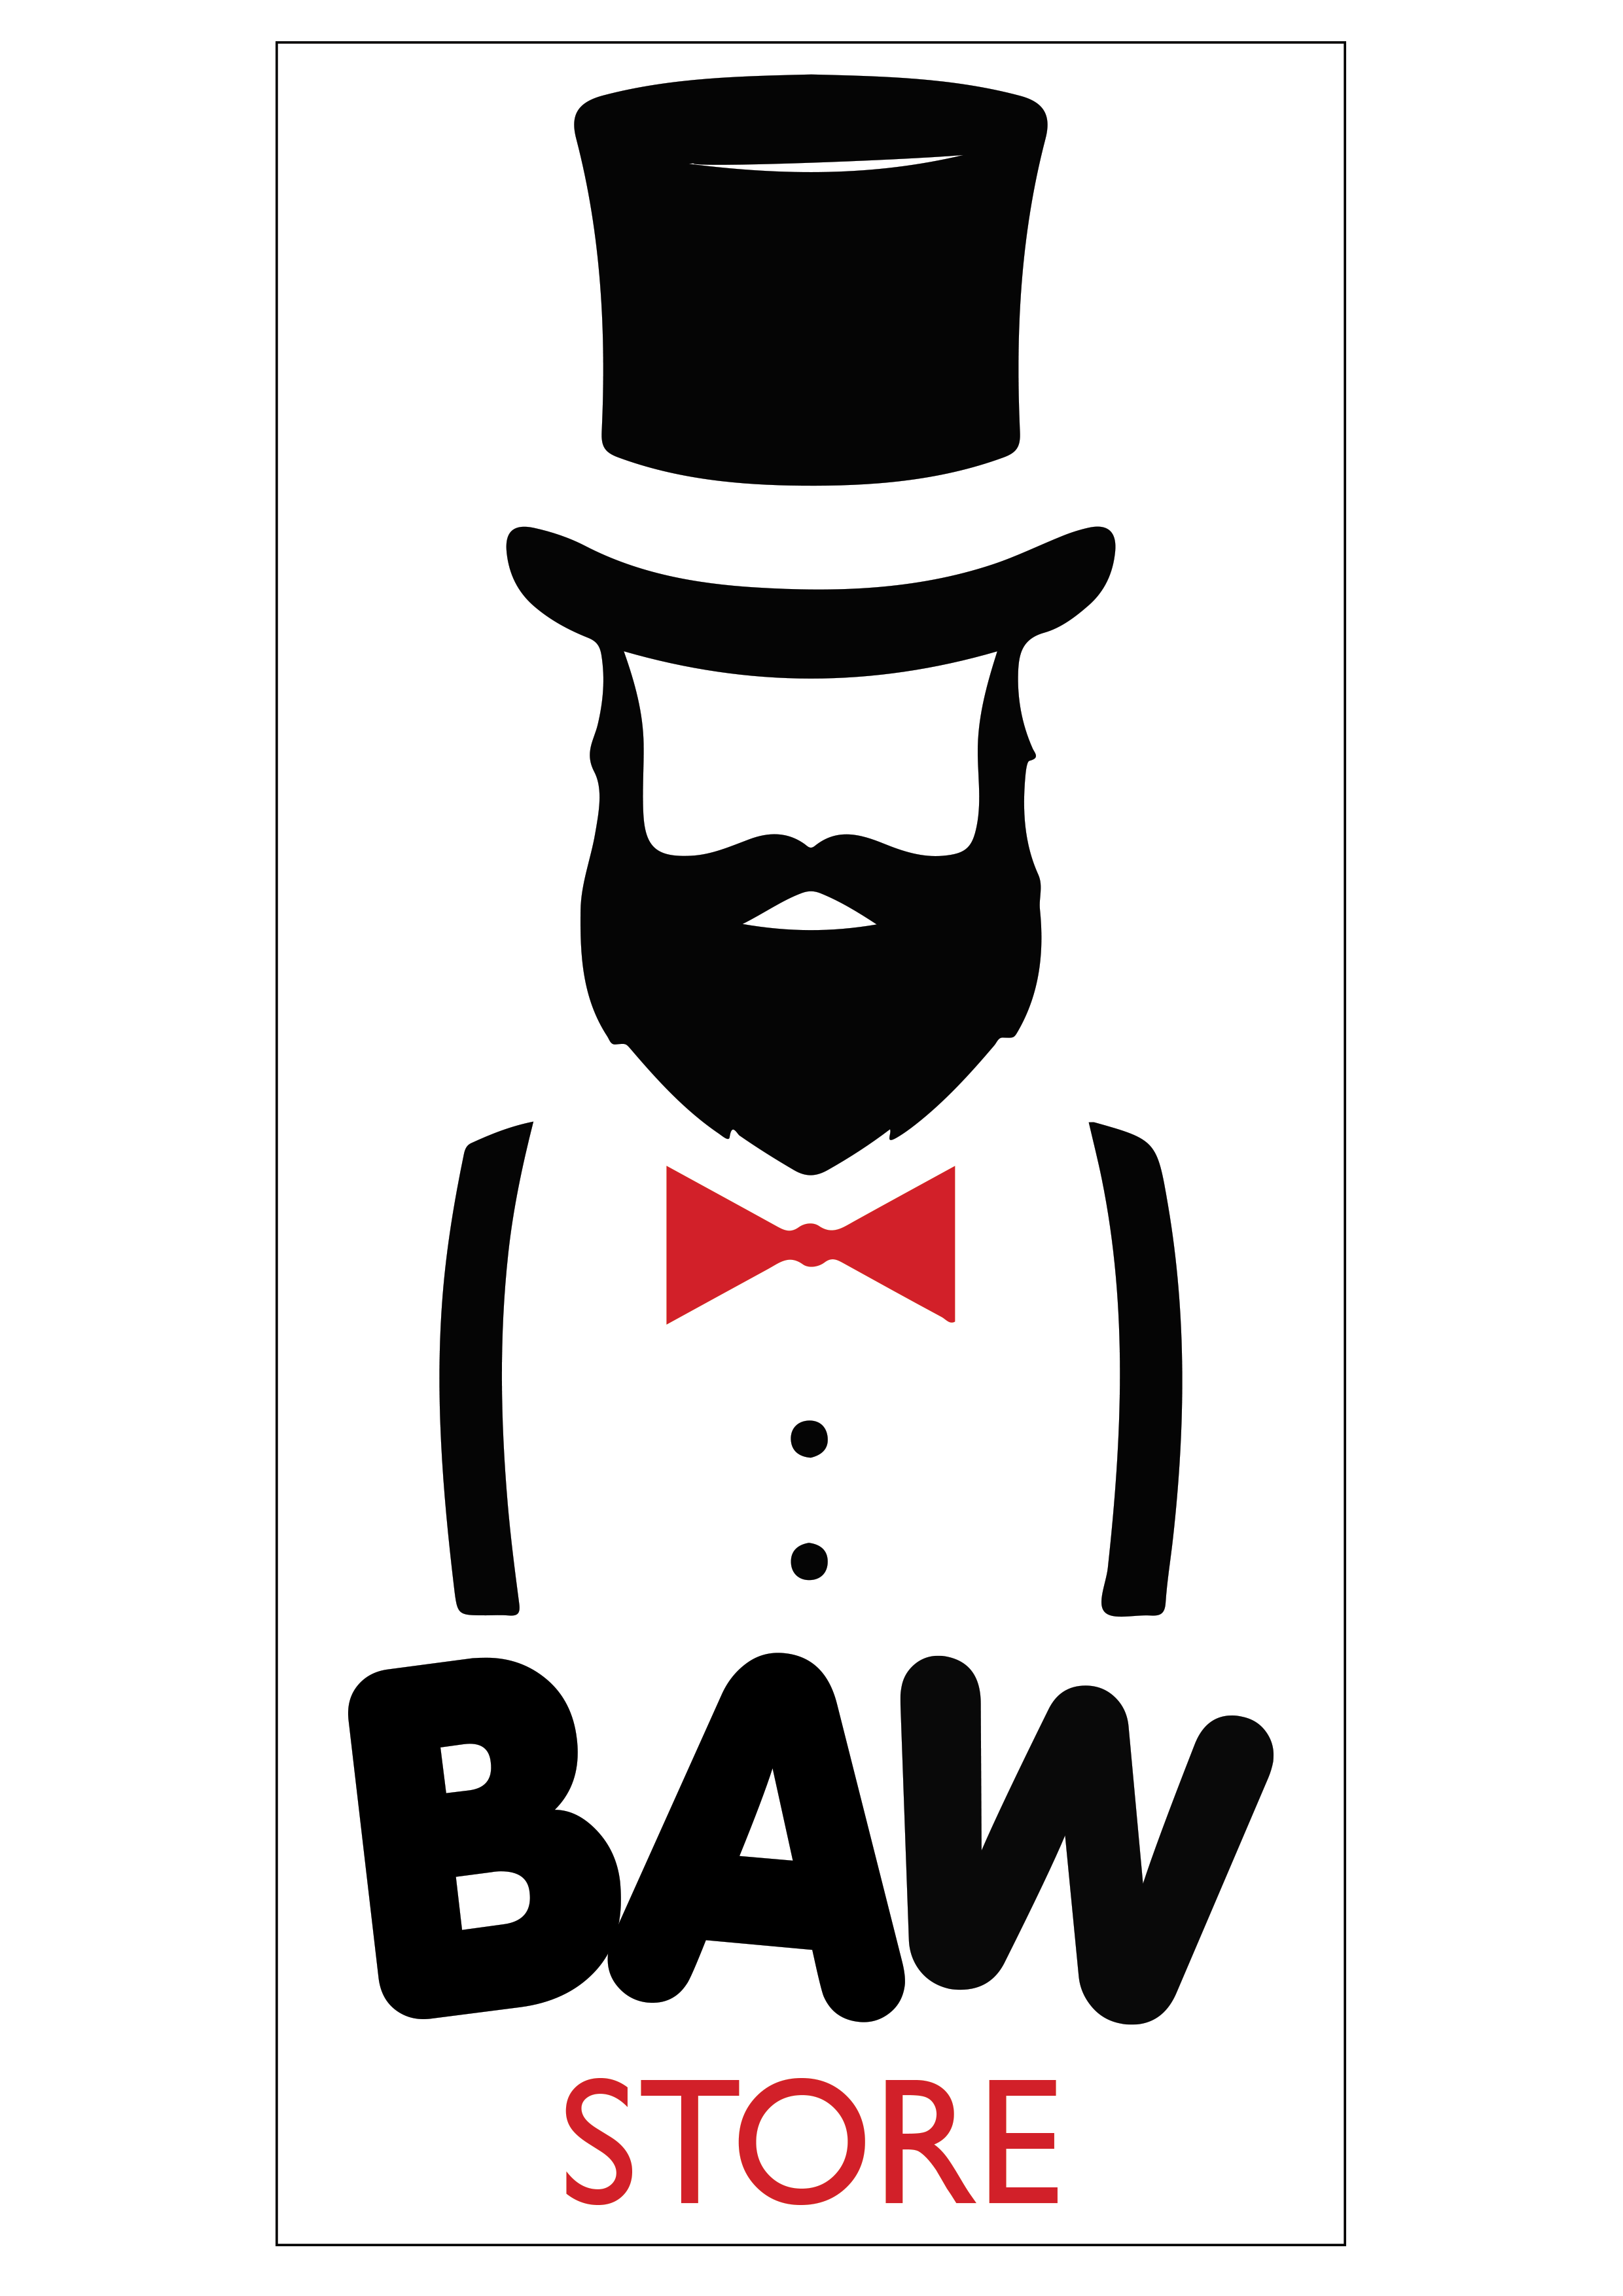 .: Baw Store :.